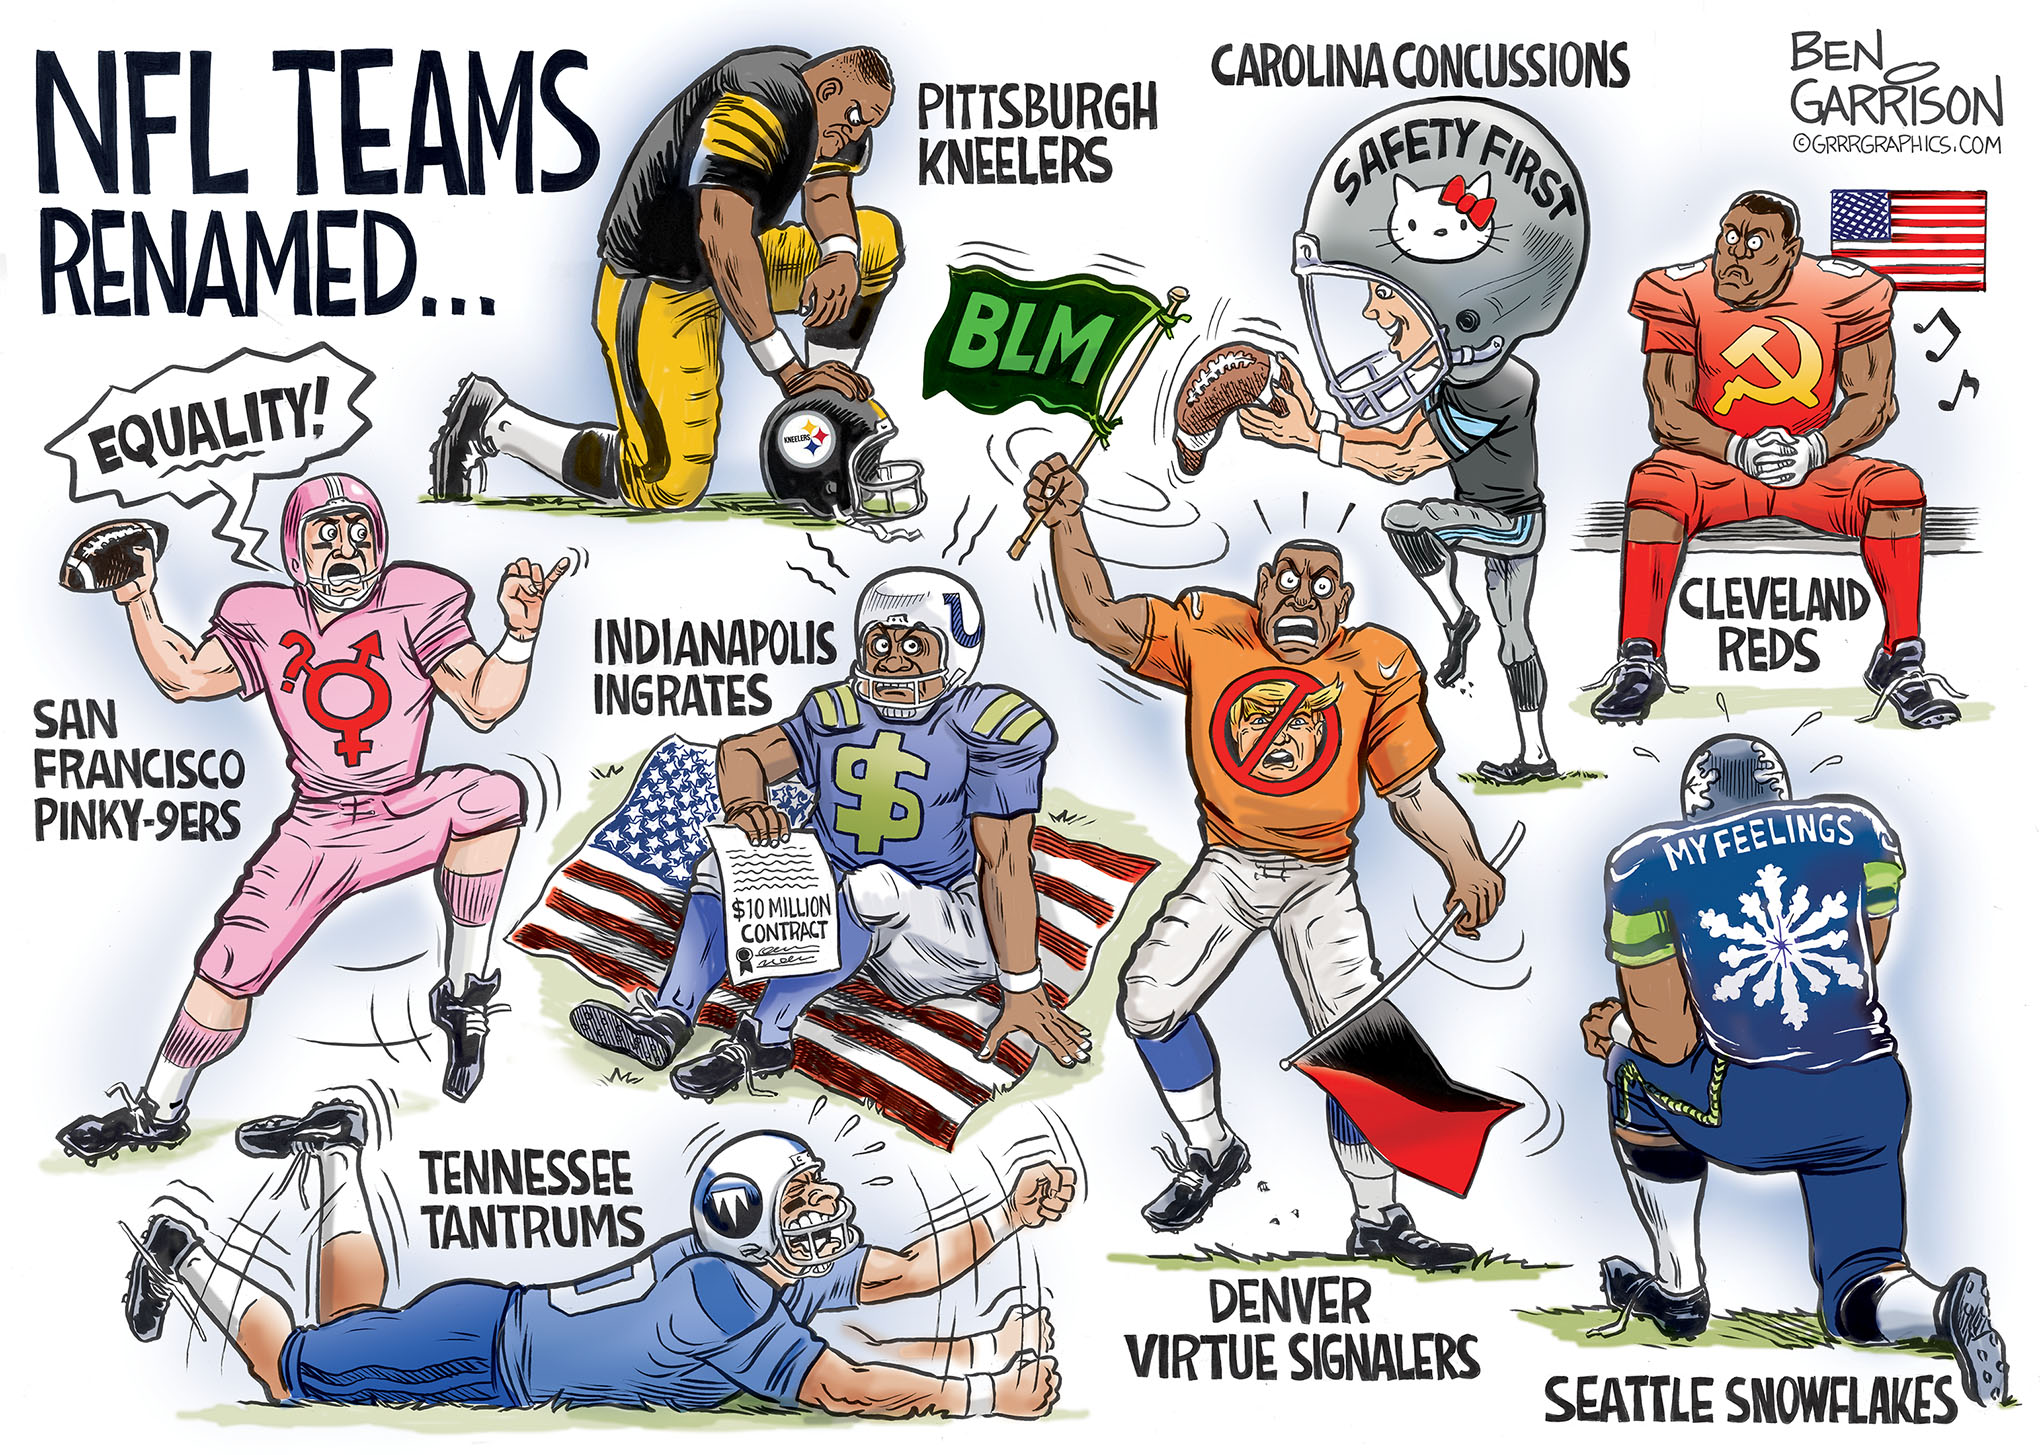 NFL-teamsn-renamed-cartoon-ben-garrison.